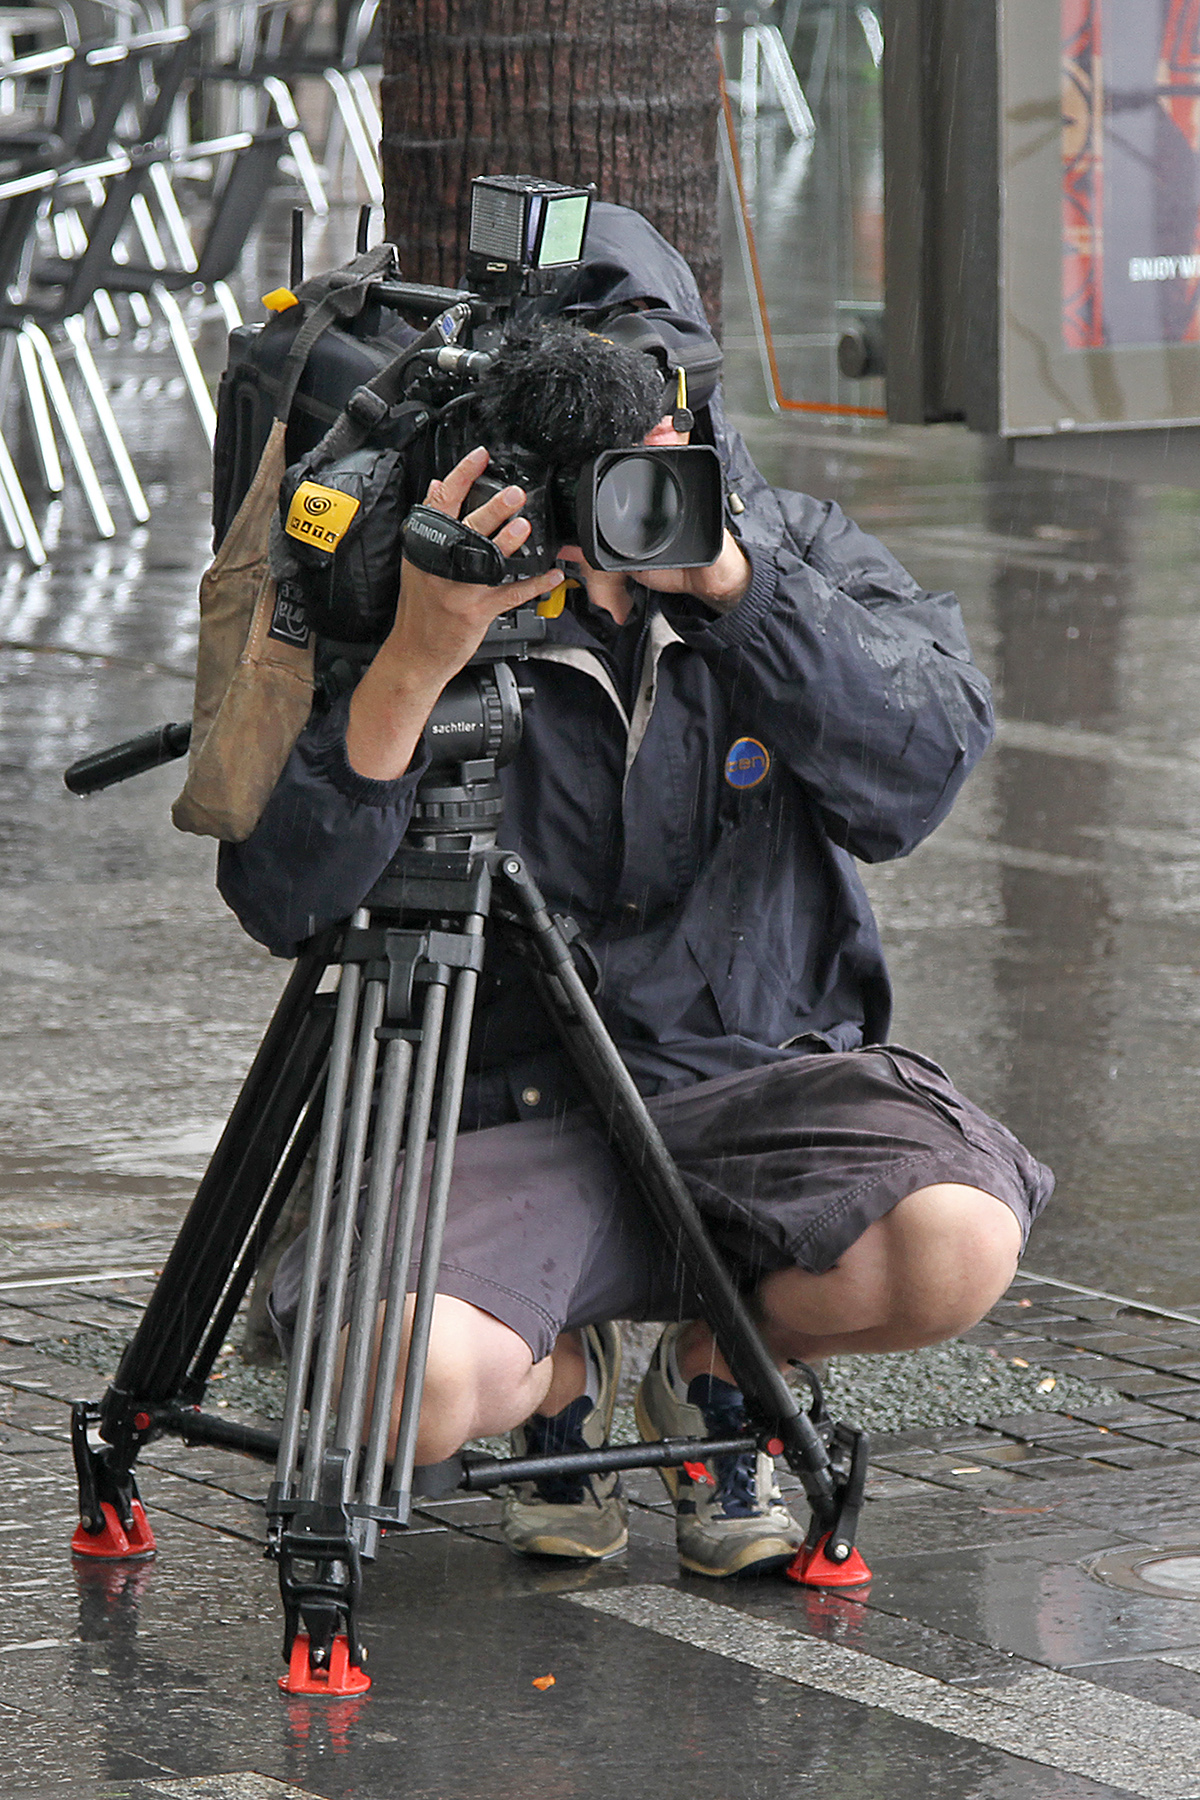 Cameraman - Simple Eng...